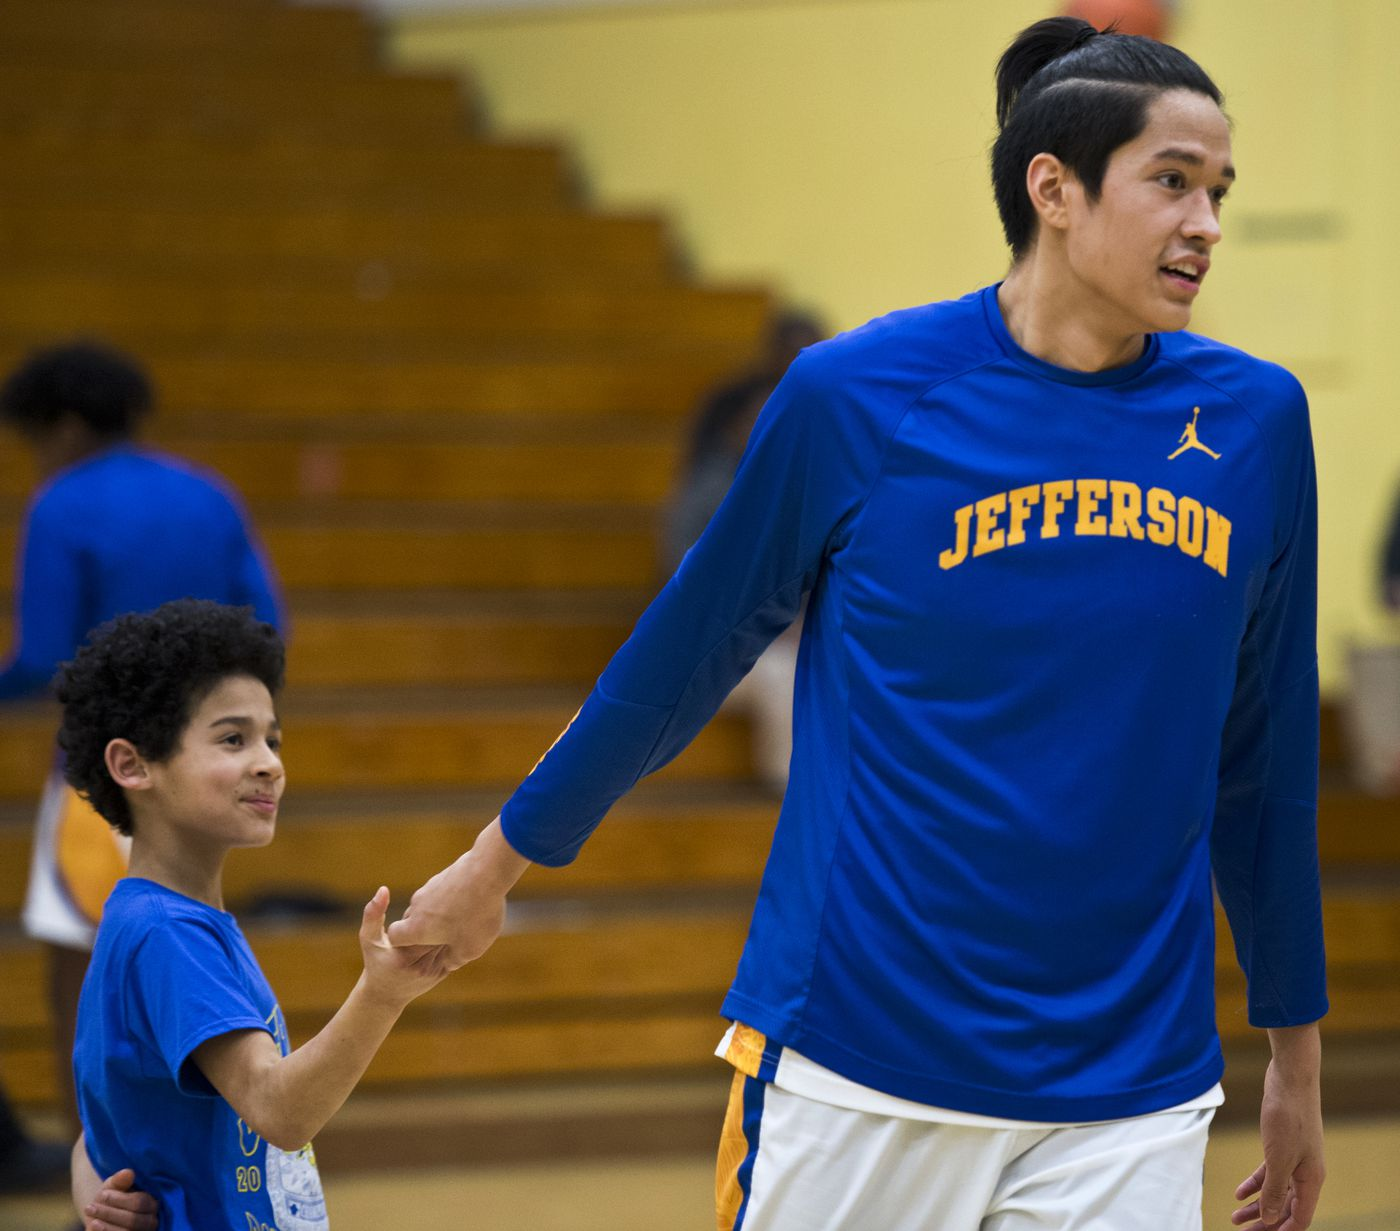 Jefferson High School ball boy Brave Johnson slaps hands with Kamaka Hepa before a game on Feb. 13, 2018, in Portland, Oregon. (Marc Lester / ADN)